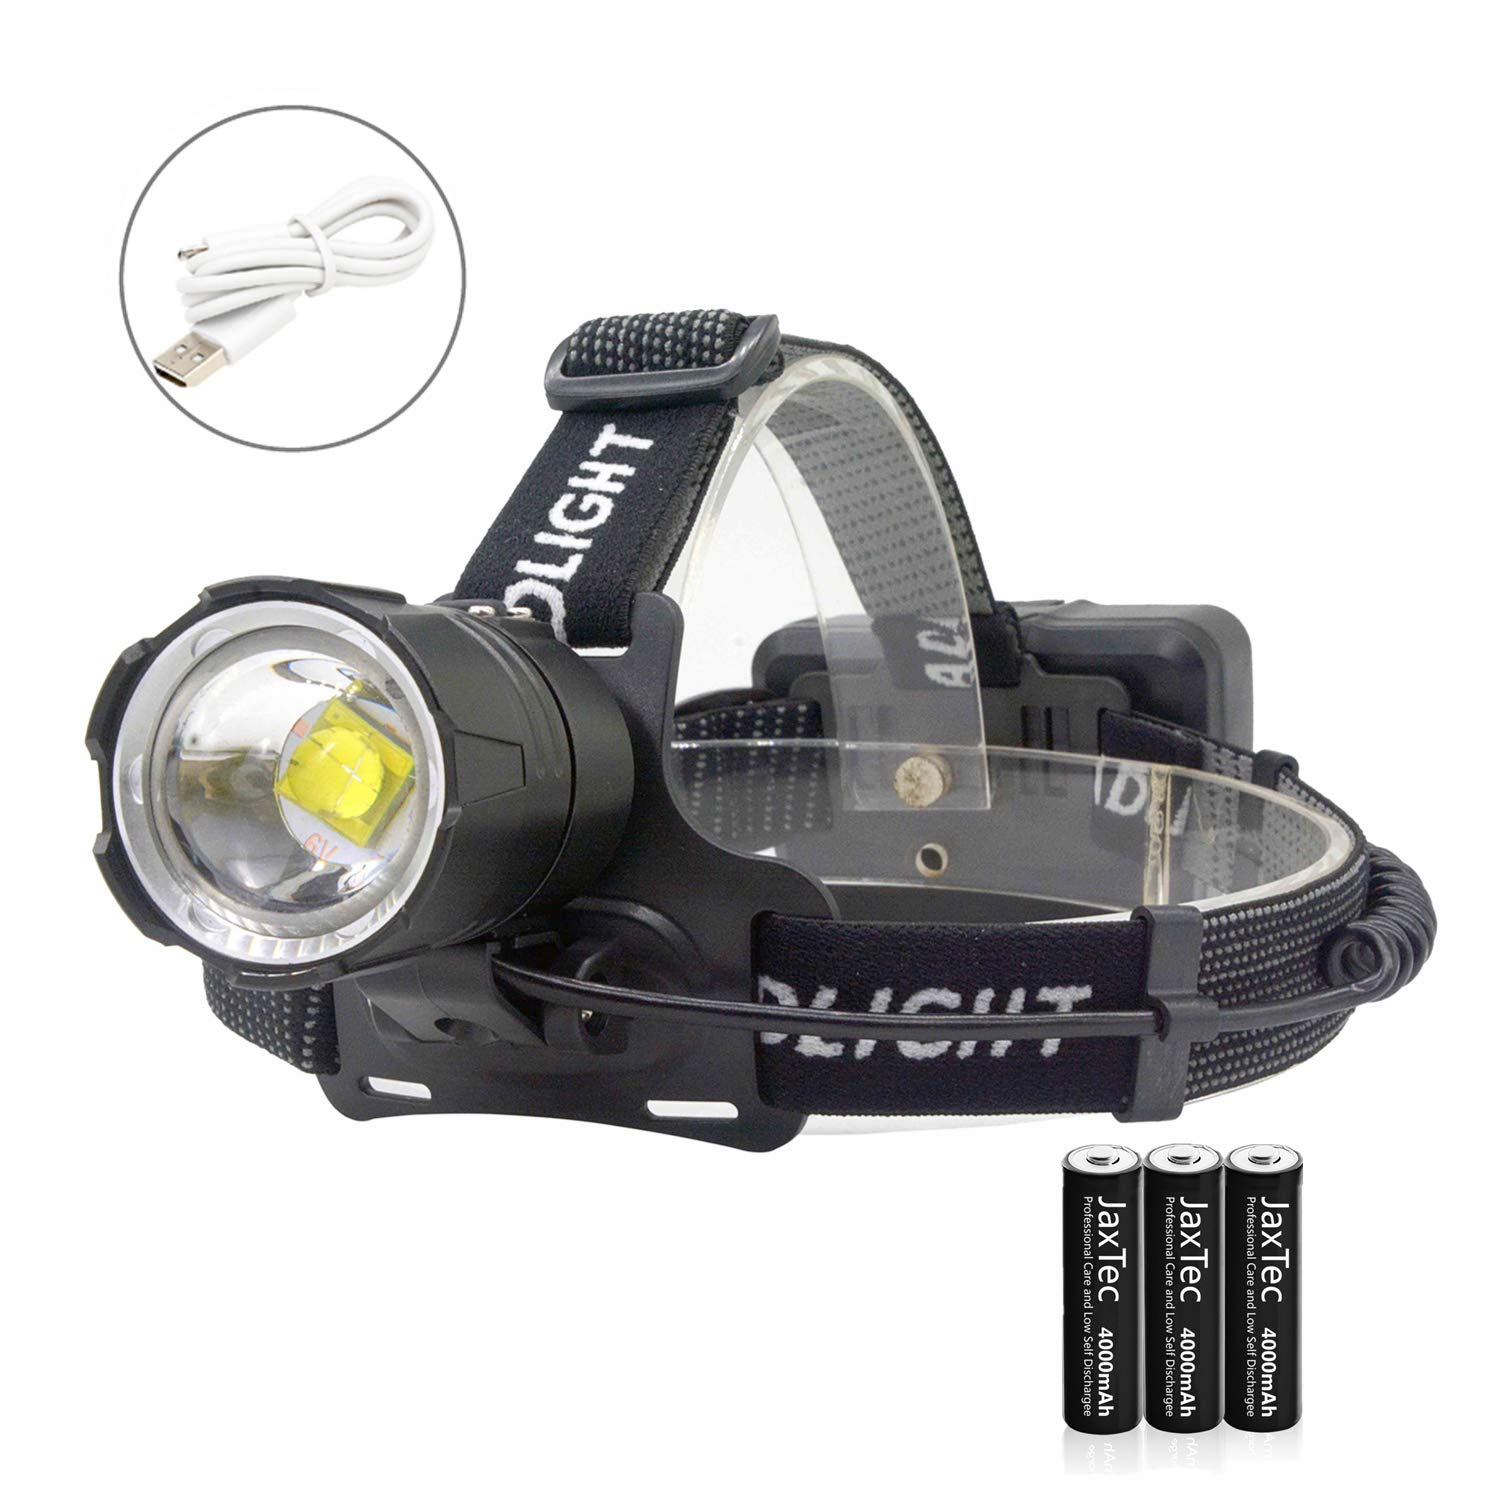 6000LM XM-L T6 LED 2 in 1 Bike Light Flashlight Head Torch Bicycle Lamp 7-Mode